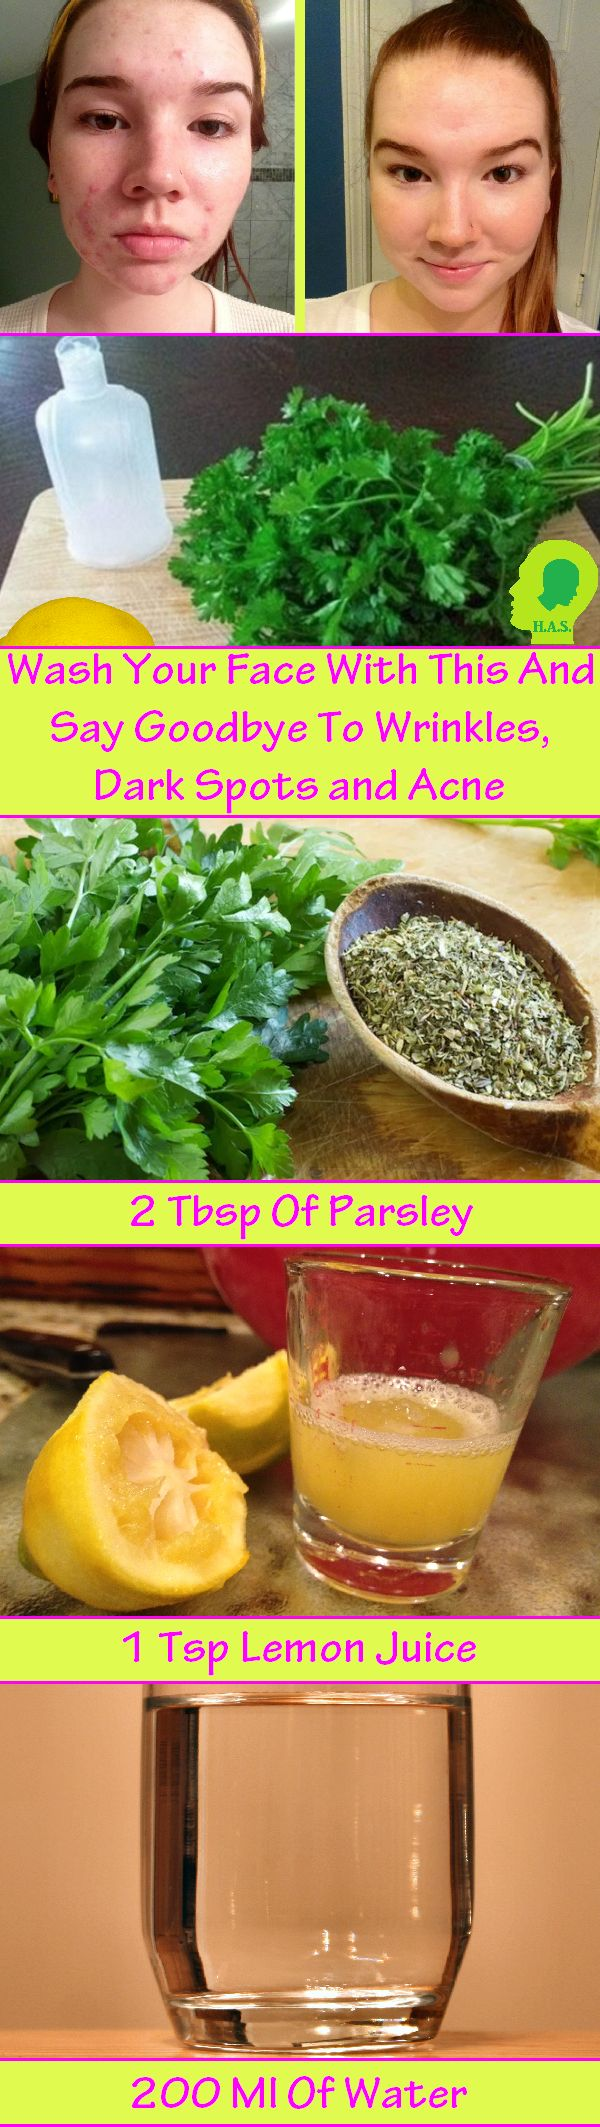 It will remove all the acnes, dark spots and will whiten your face and skin, providing a shiny and healthy skin.